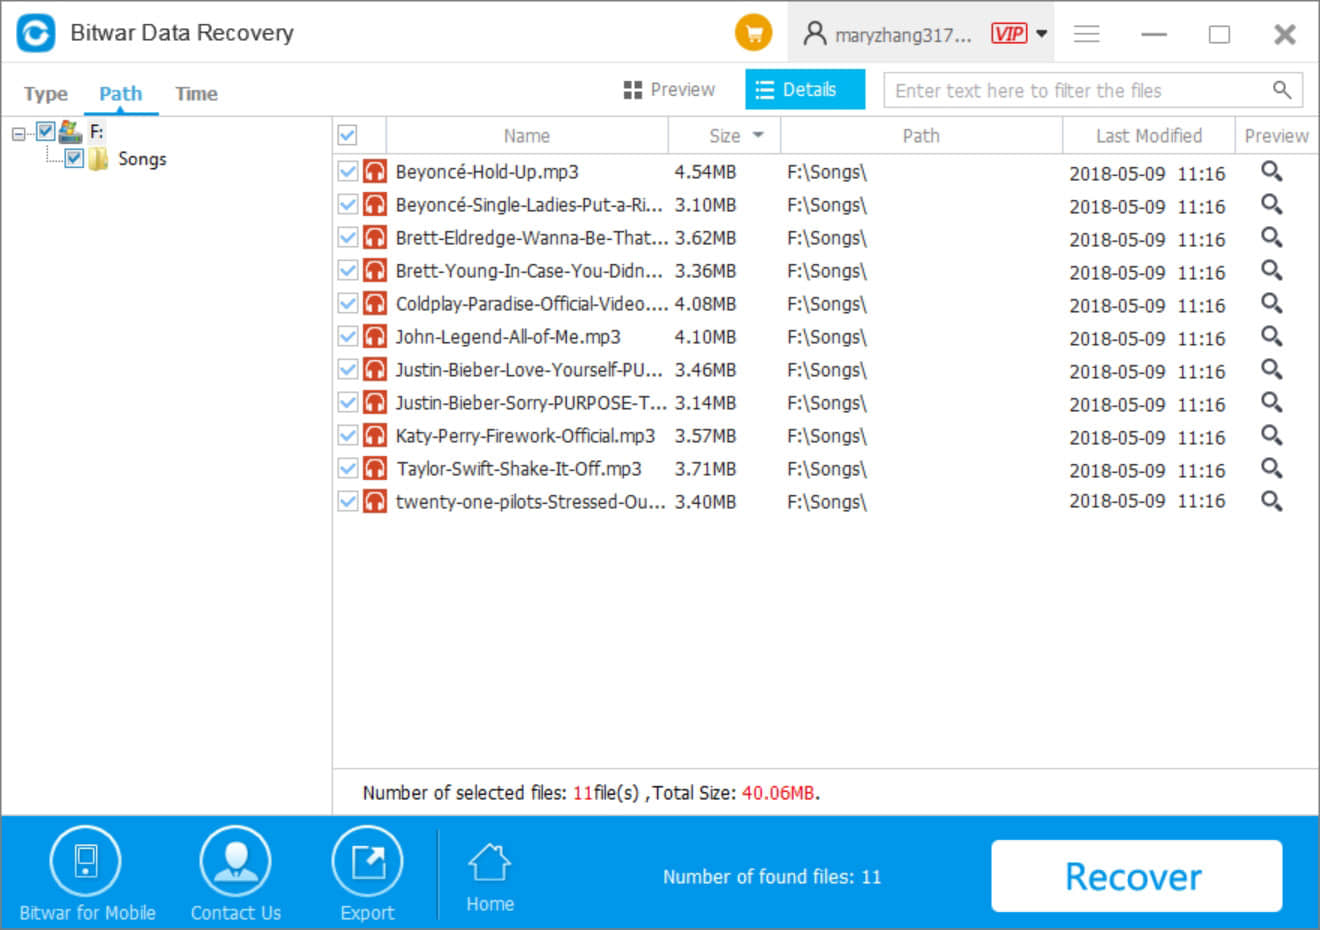 6-Data Recovery-Formatted Musics Recovery-Scanning Results